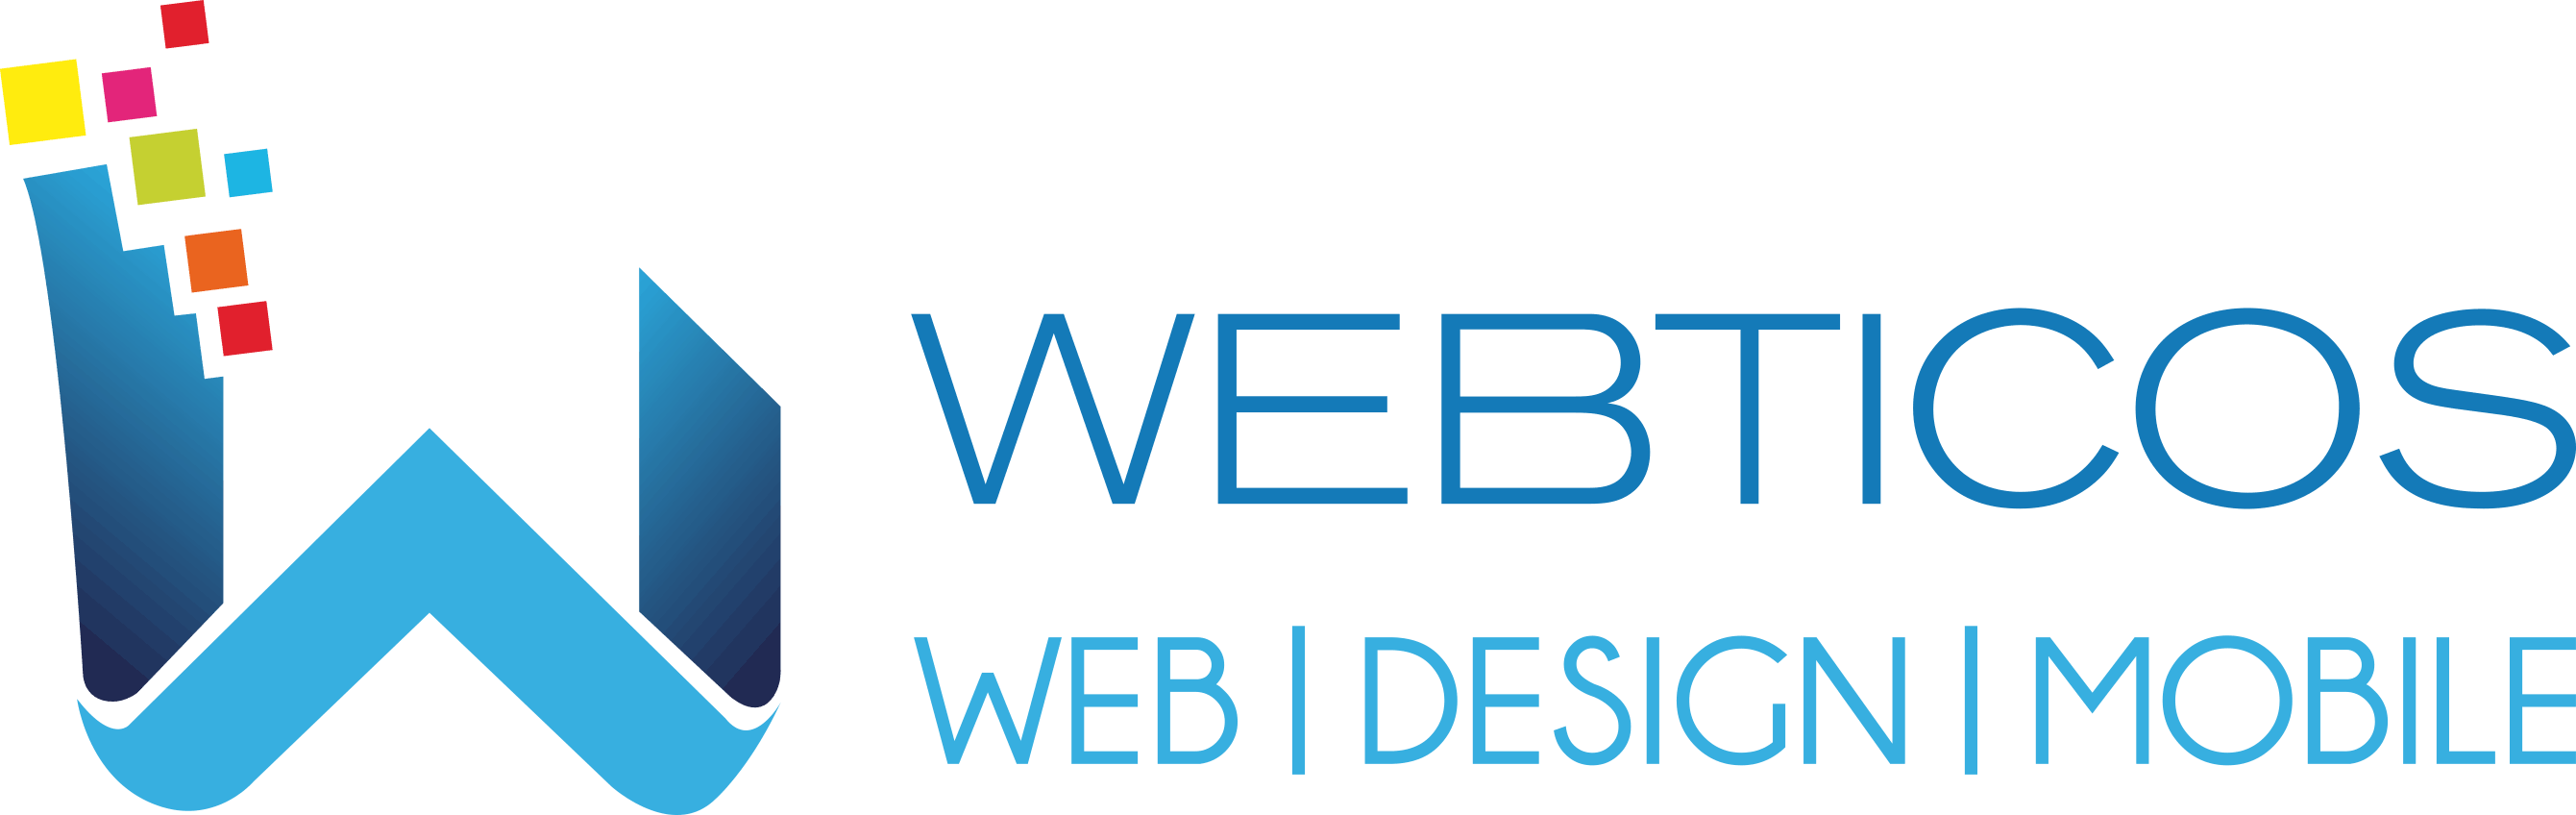 Webticos | Web | Design | Mobile